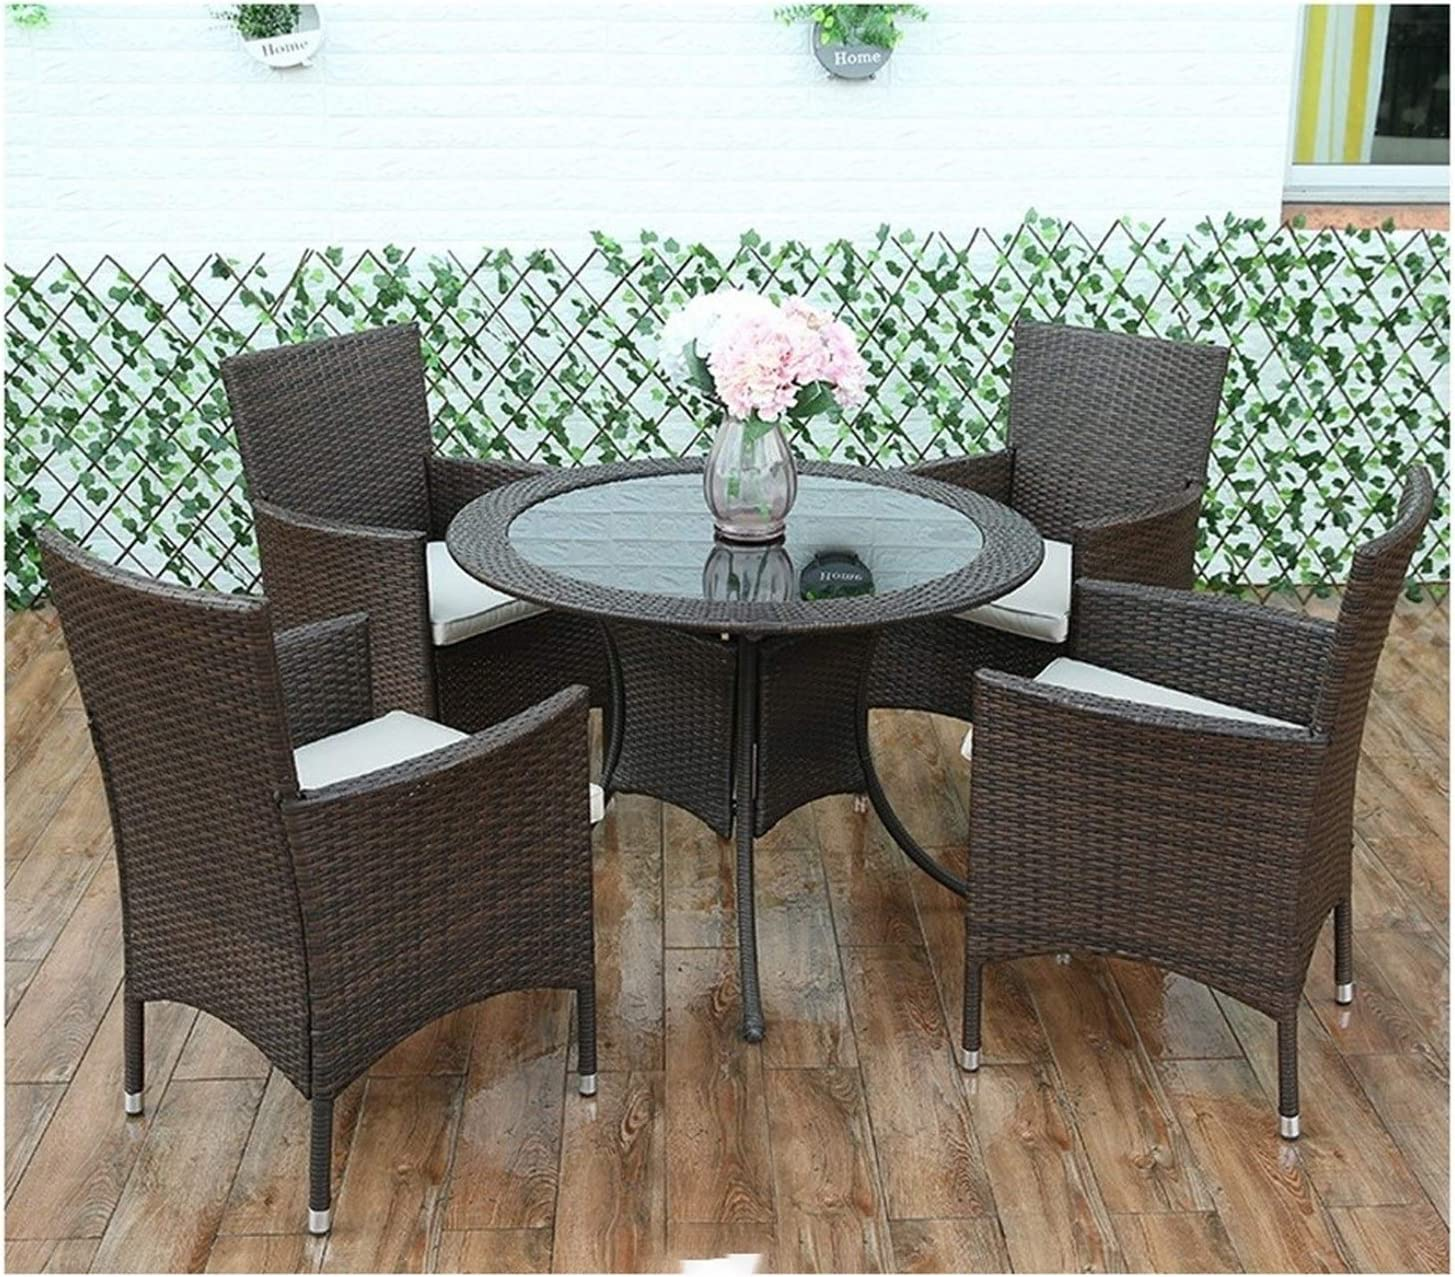 Patio Dining Set Outdoor favorite Furniture 4 years warranty with Furnitu